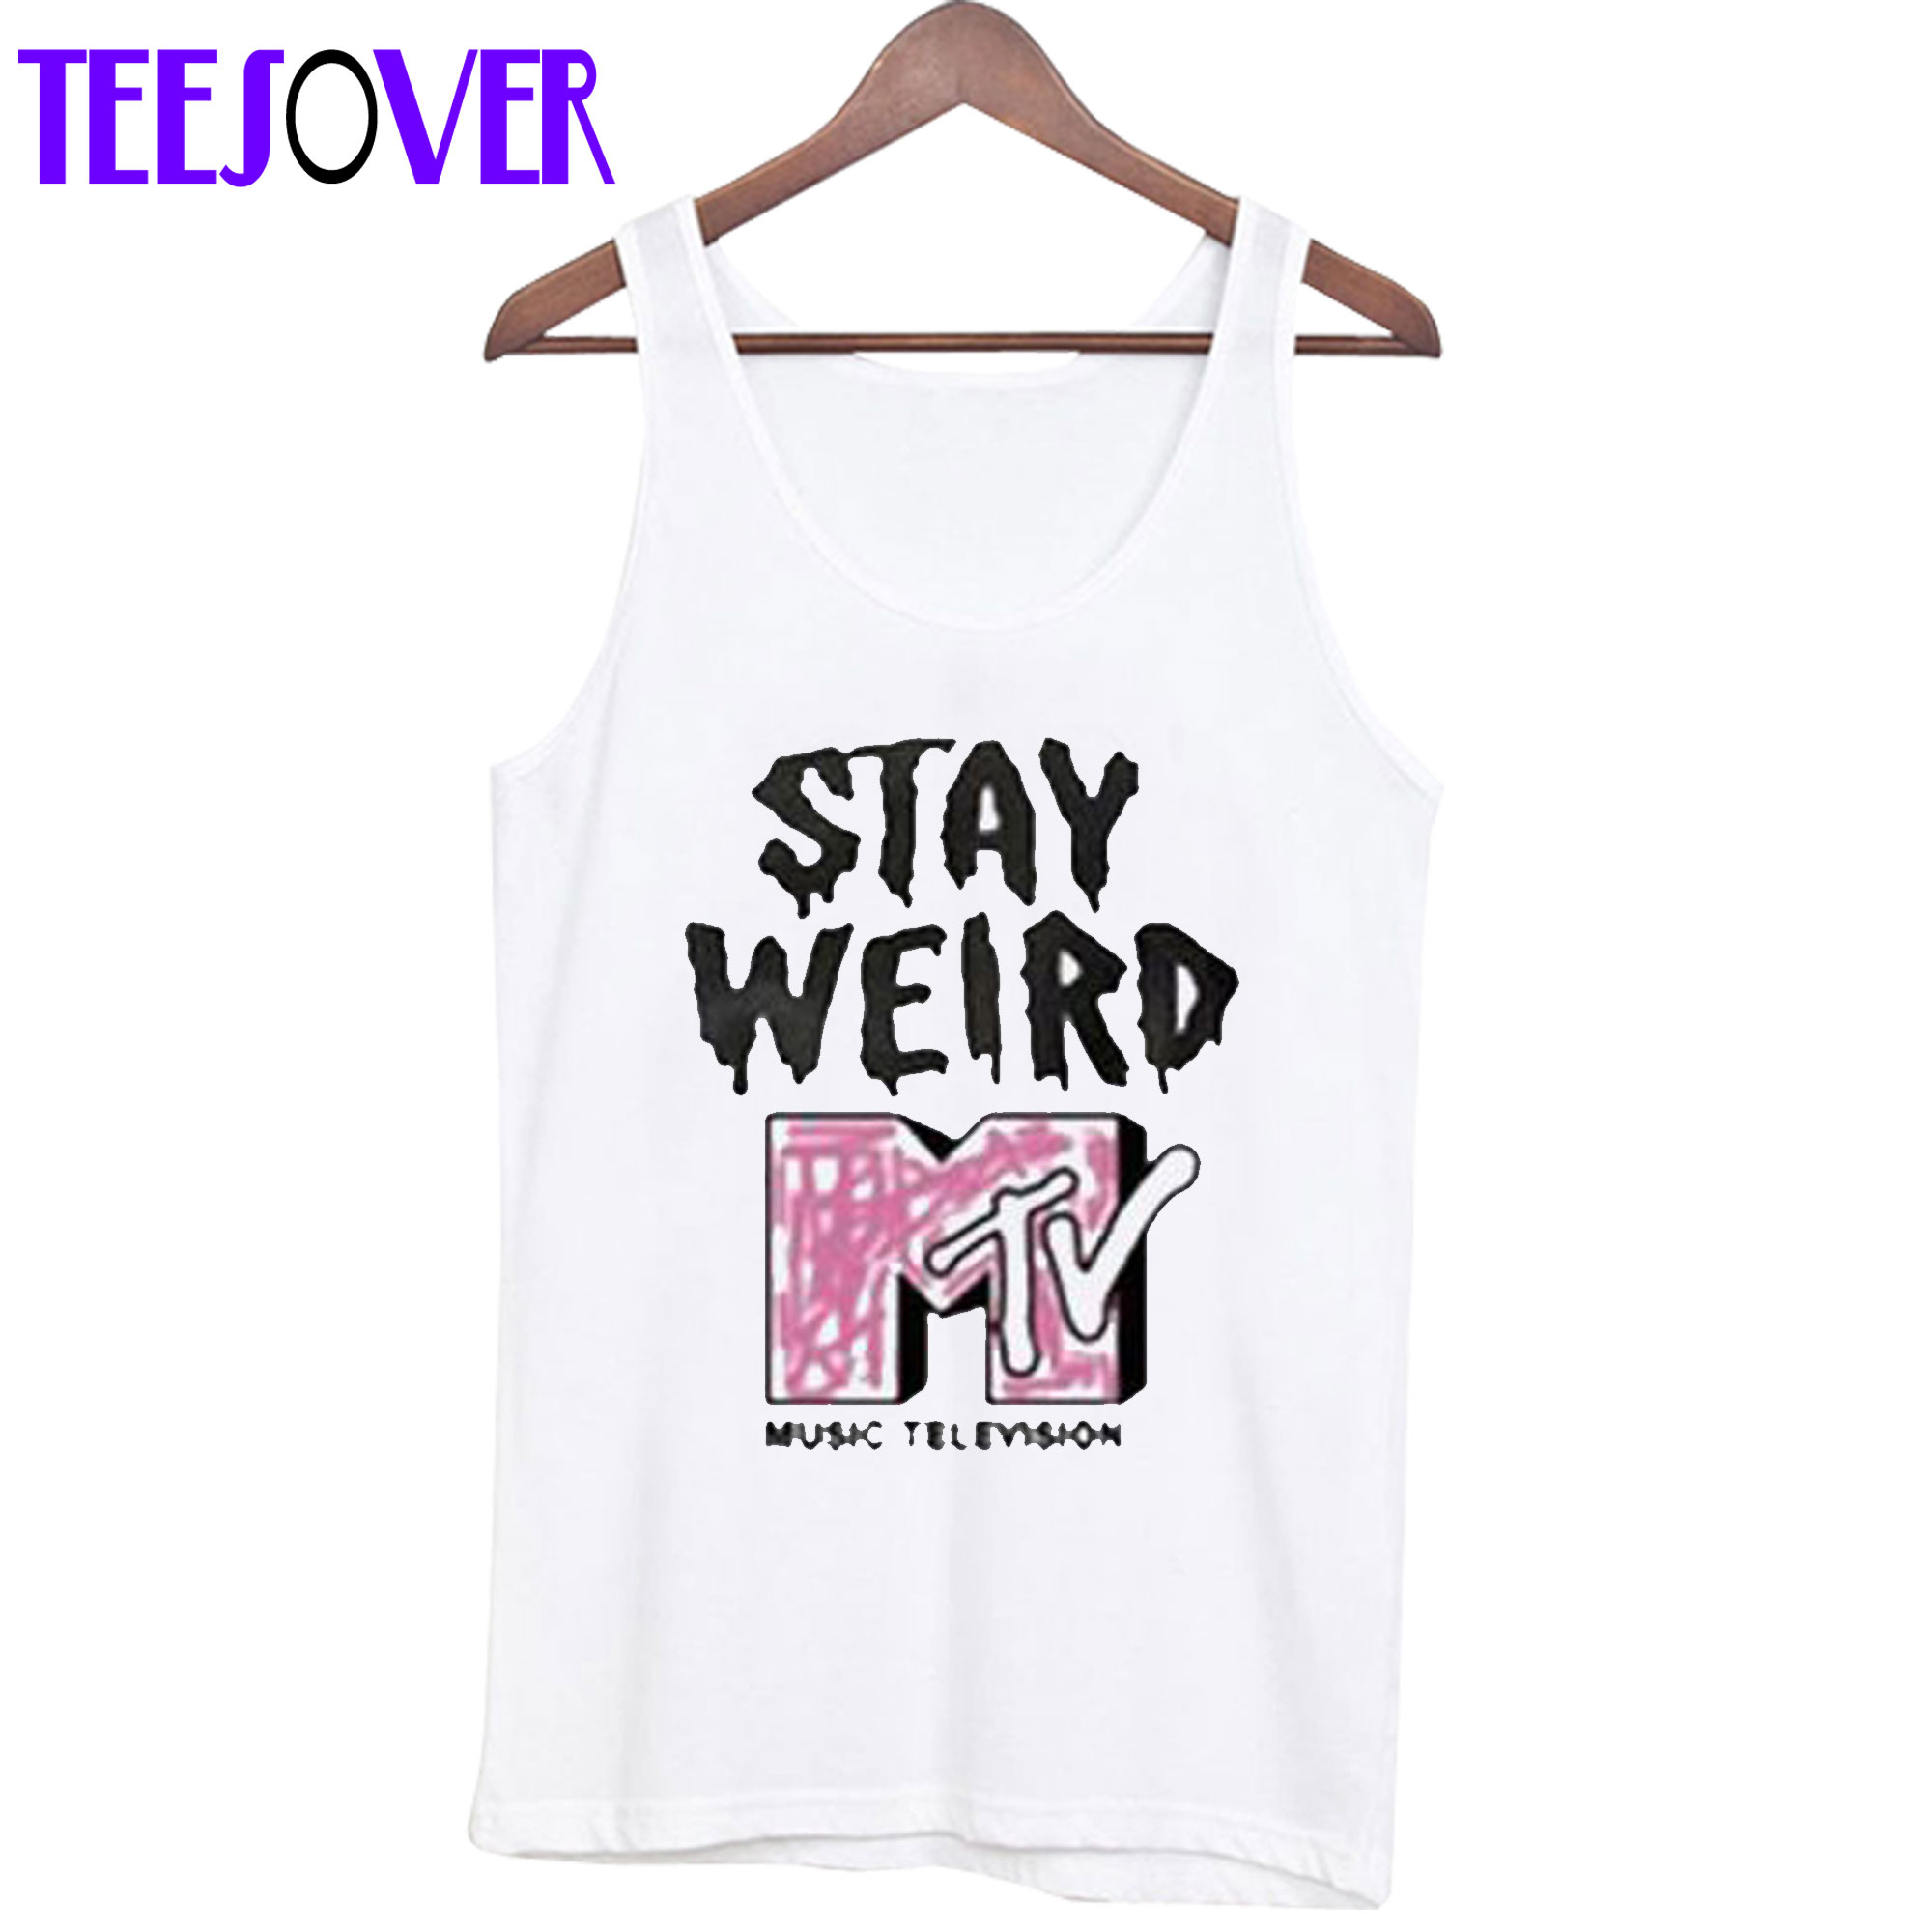 Stay Weird MTV Tanktop